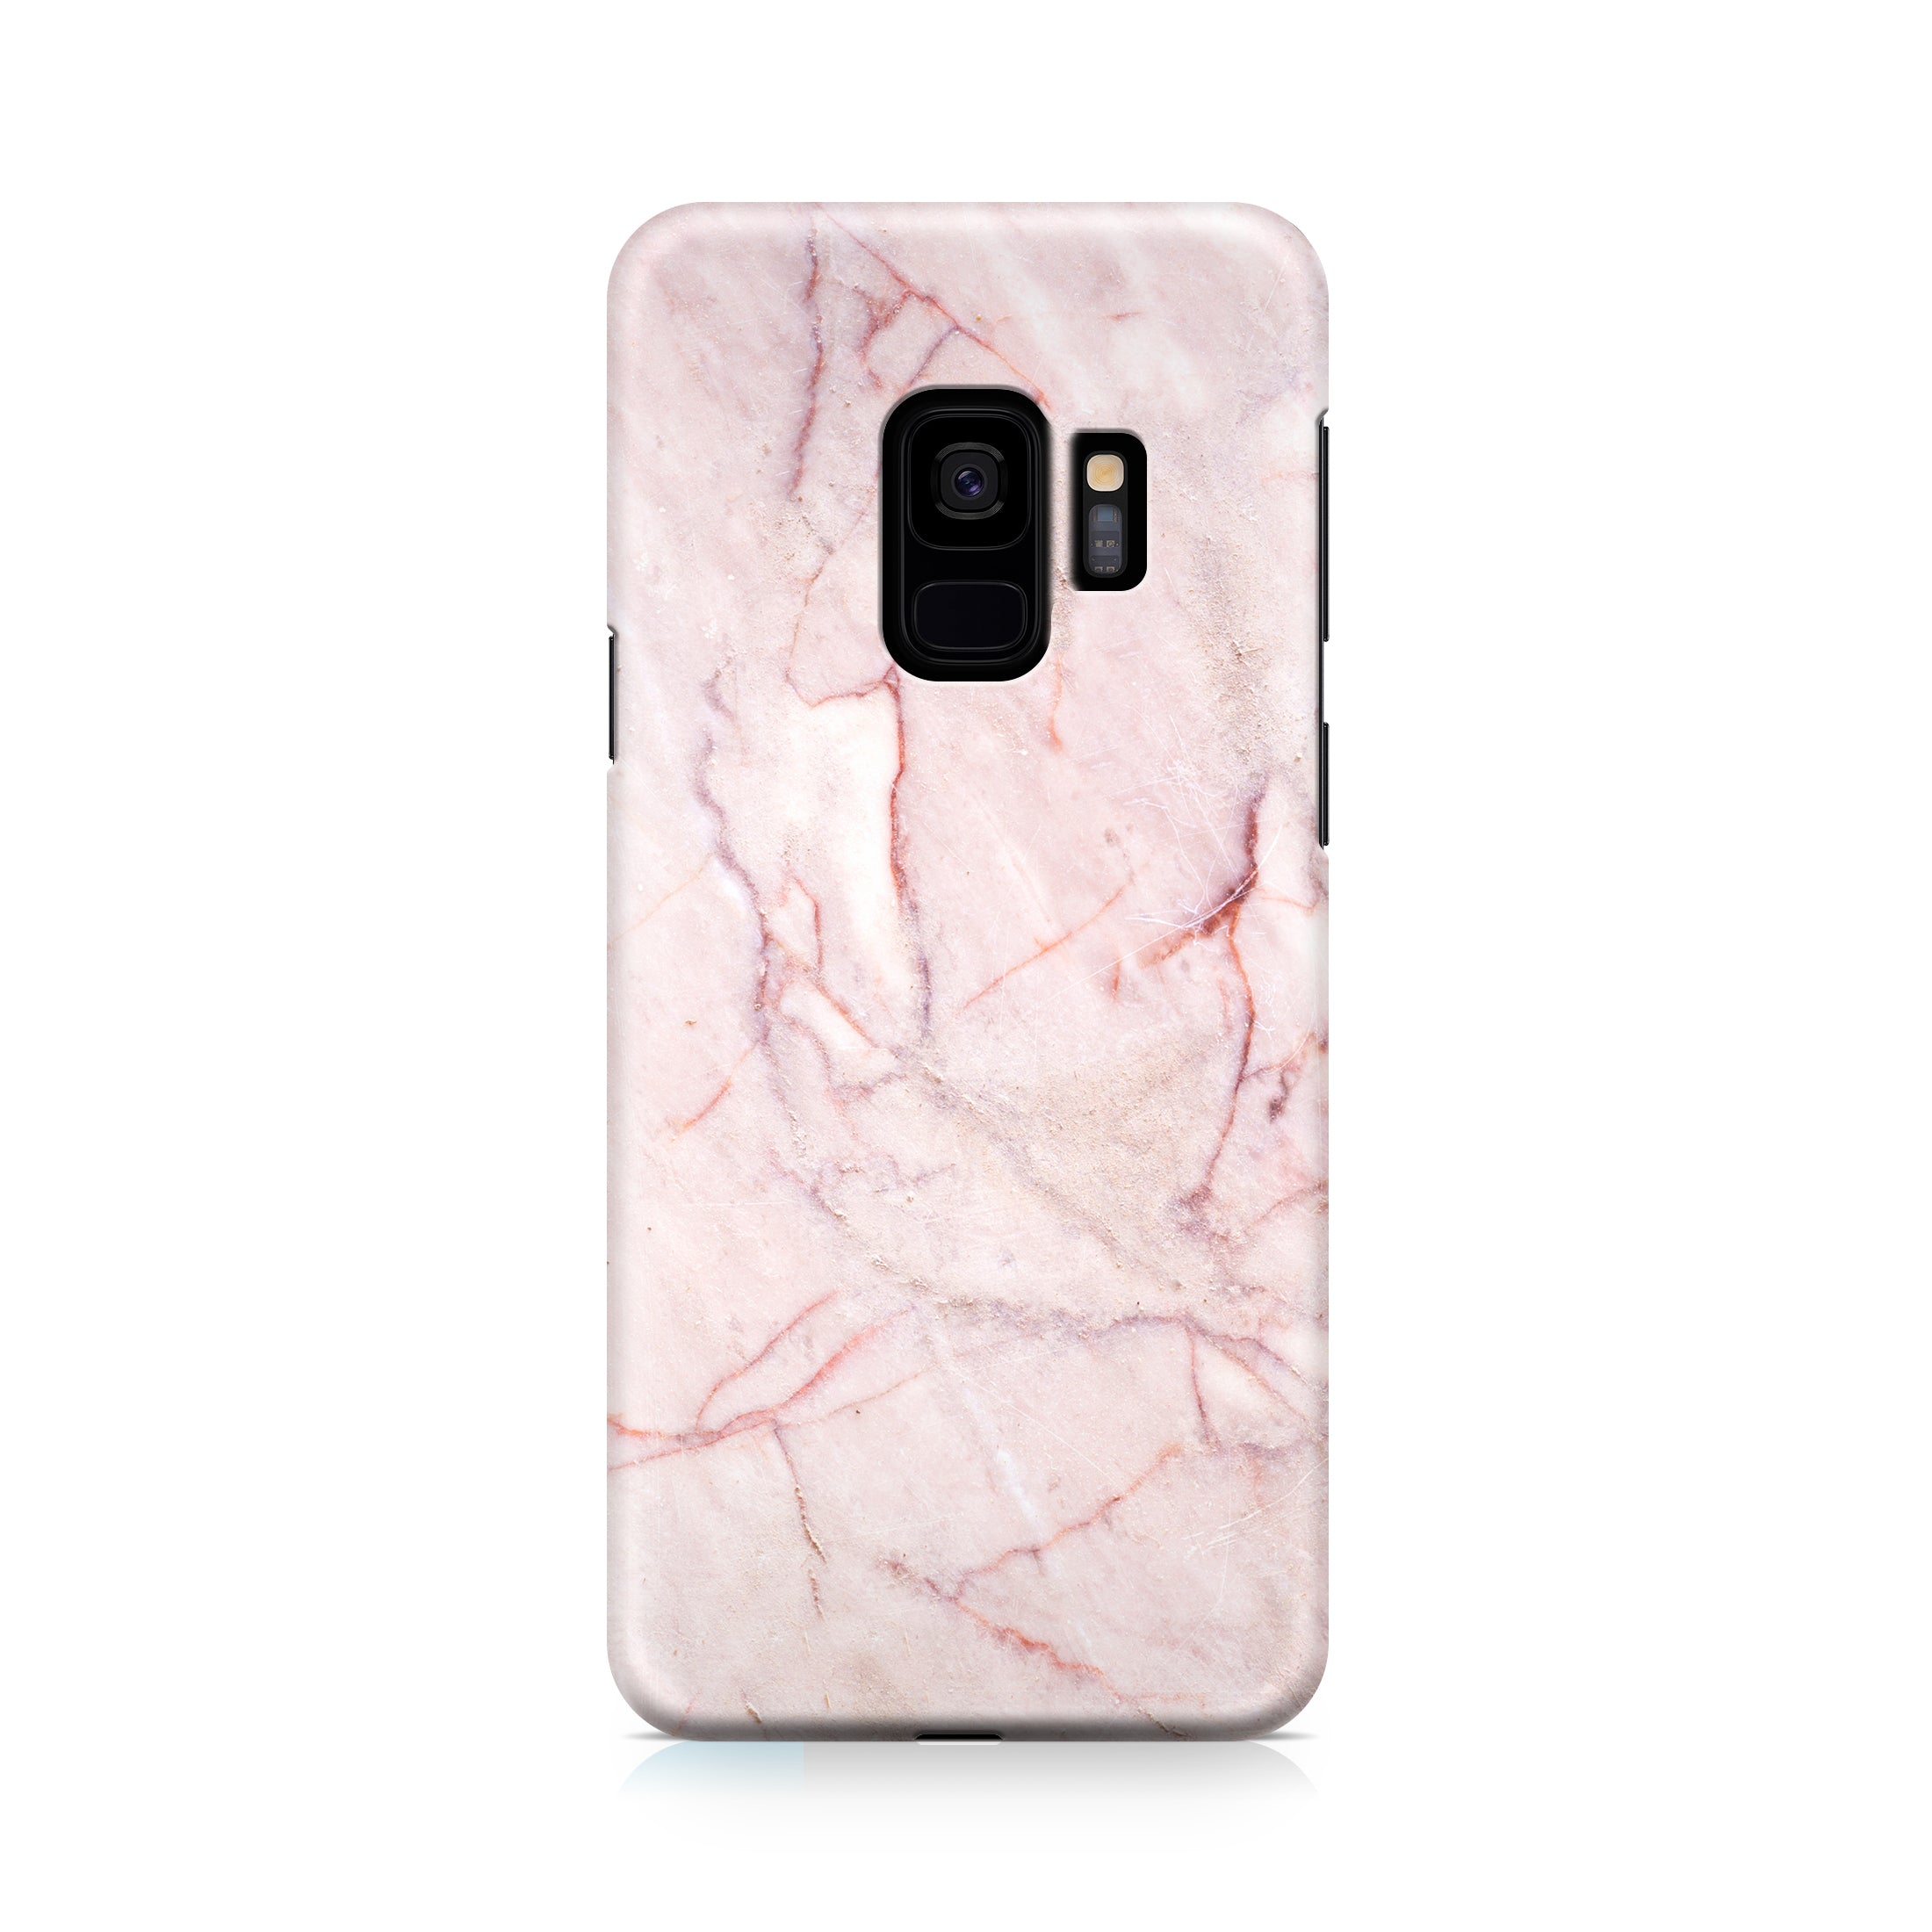 PINK MARBLE SAMSUNG CASE + SCREEN PROTECTOR